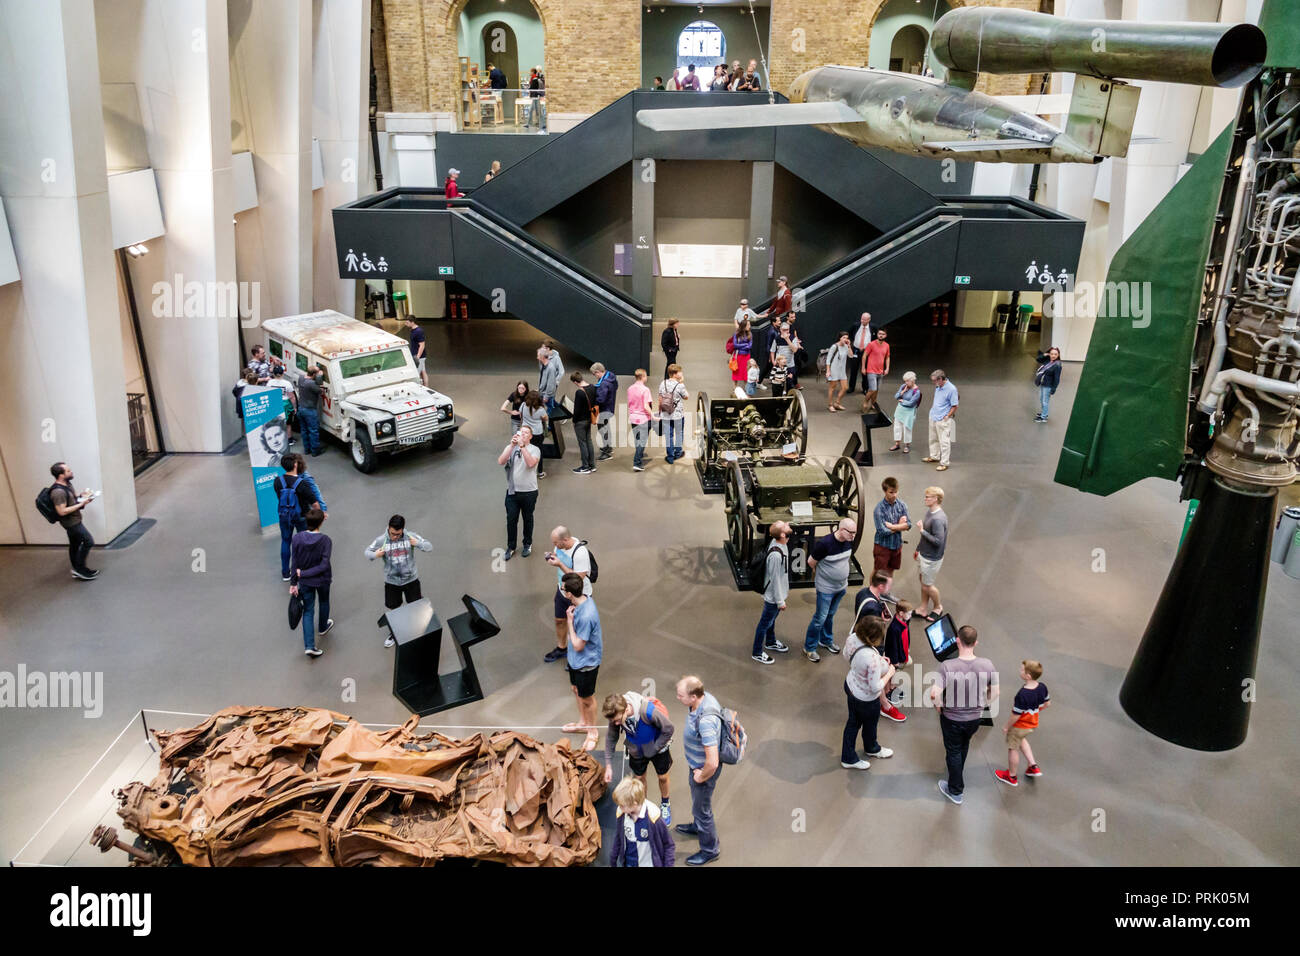 London England United Kingdom Great Britain Southwark Imperial War Museum military war weapons archives inside interior atrium exhibit aircraft vehicl - Stock Image